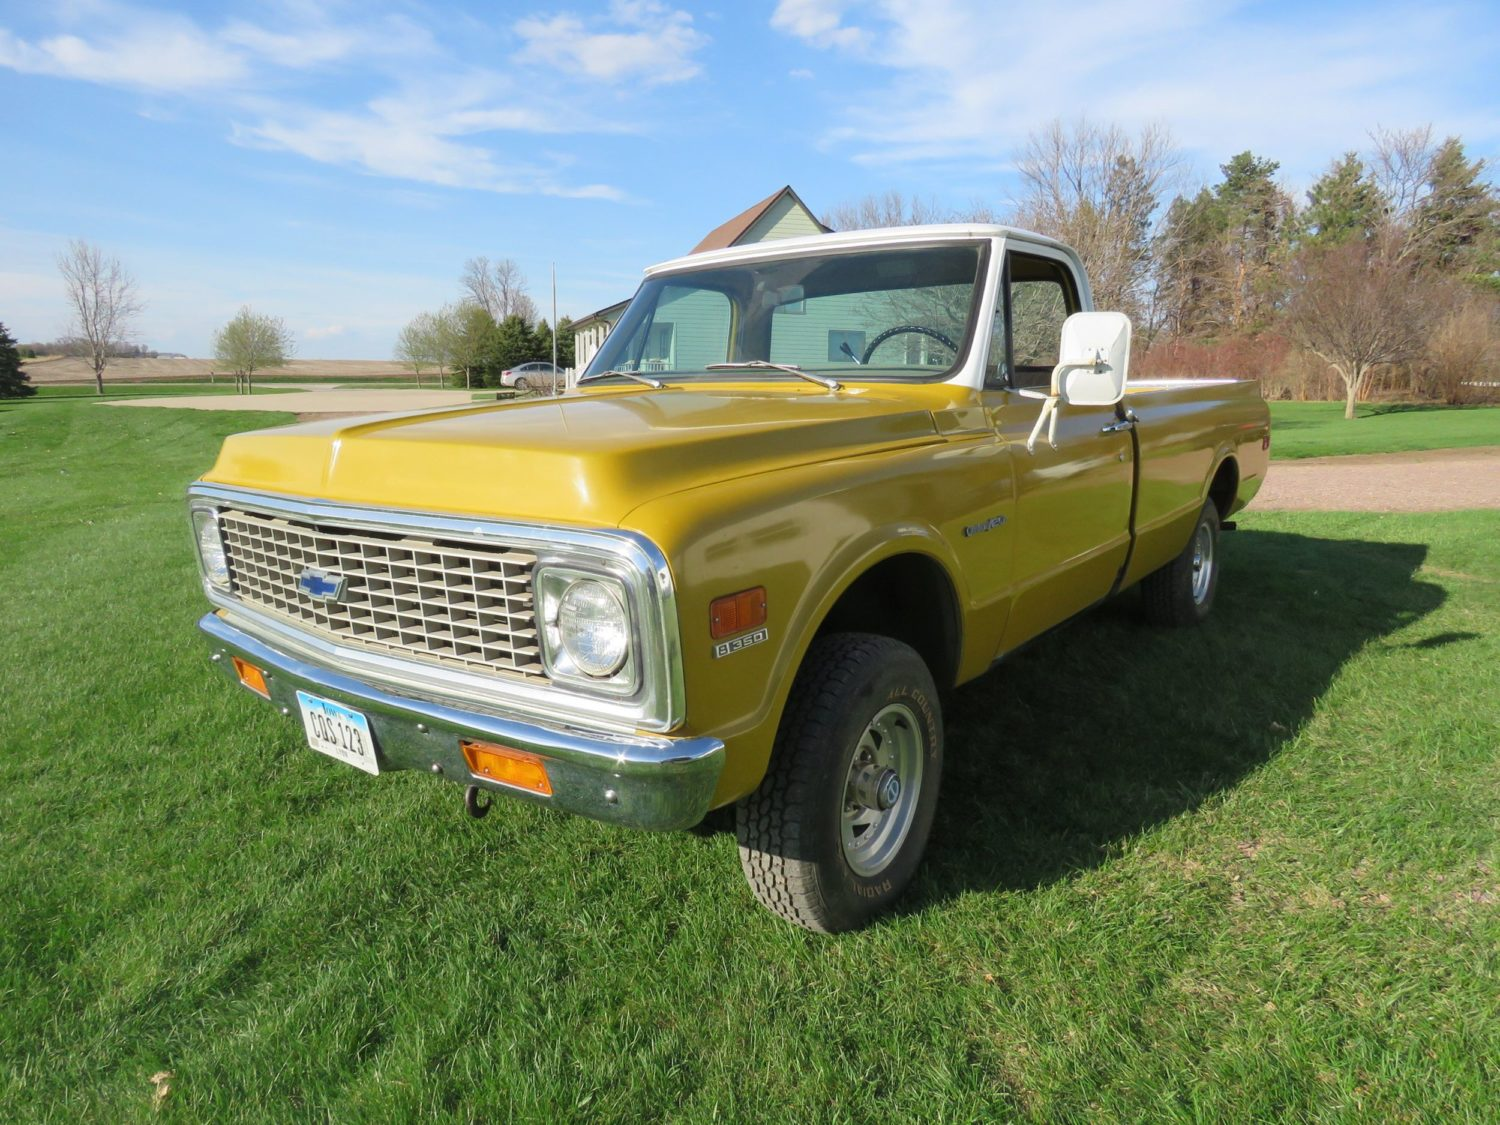 Chevrolet Pickups & C-10/20 Parts, Chevelle, & More Collector Vehicles- The Larry Zuraff Collection - image 3